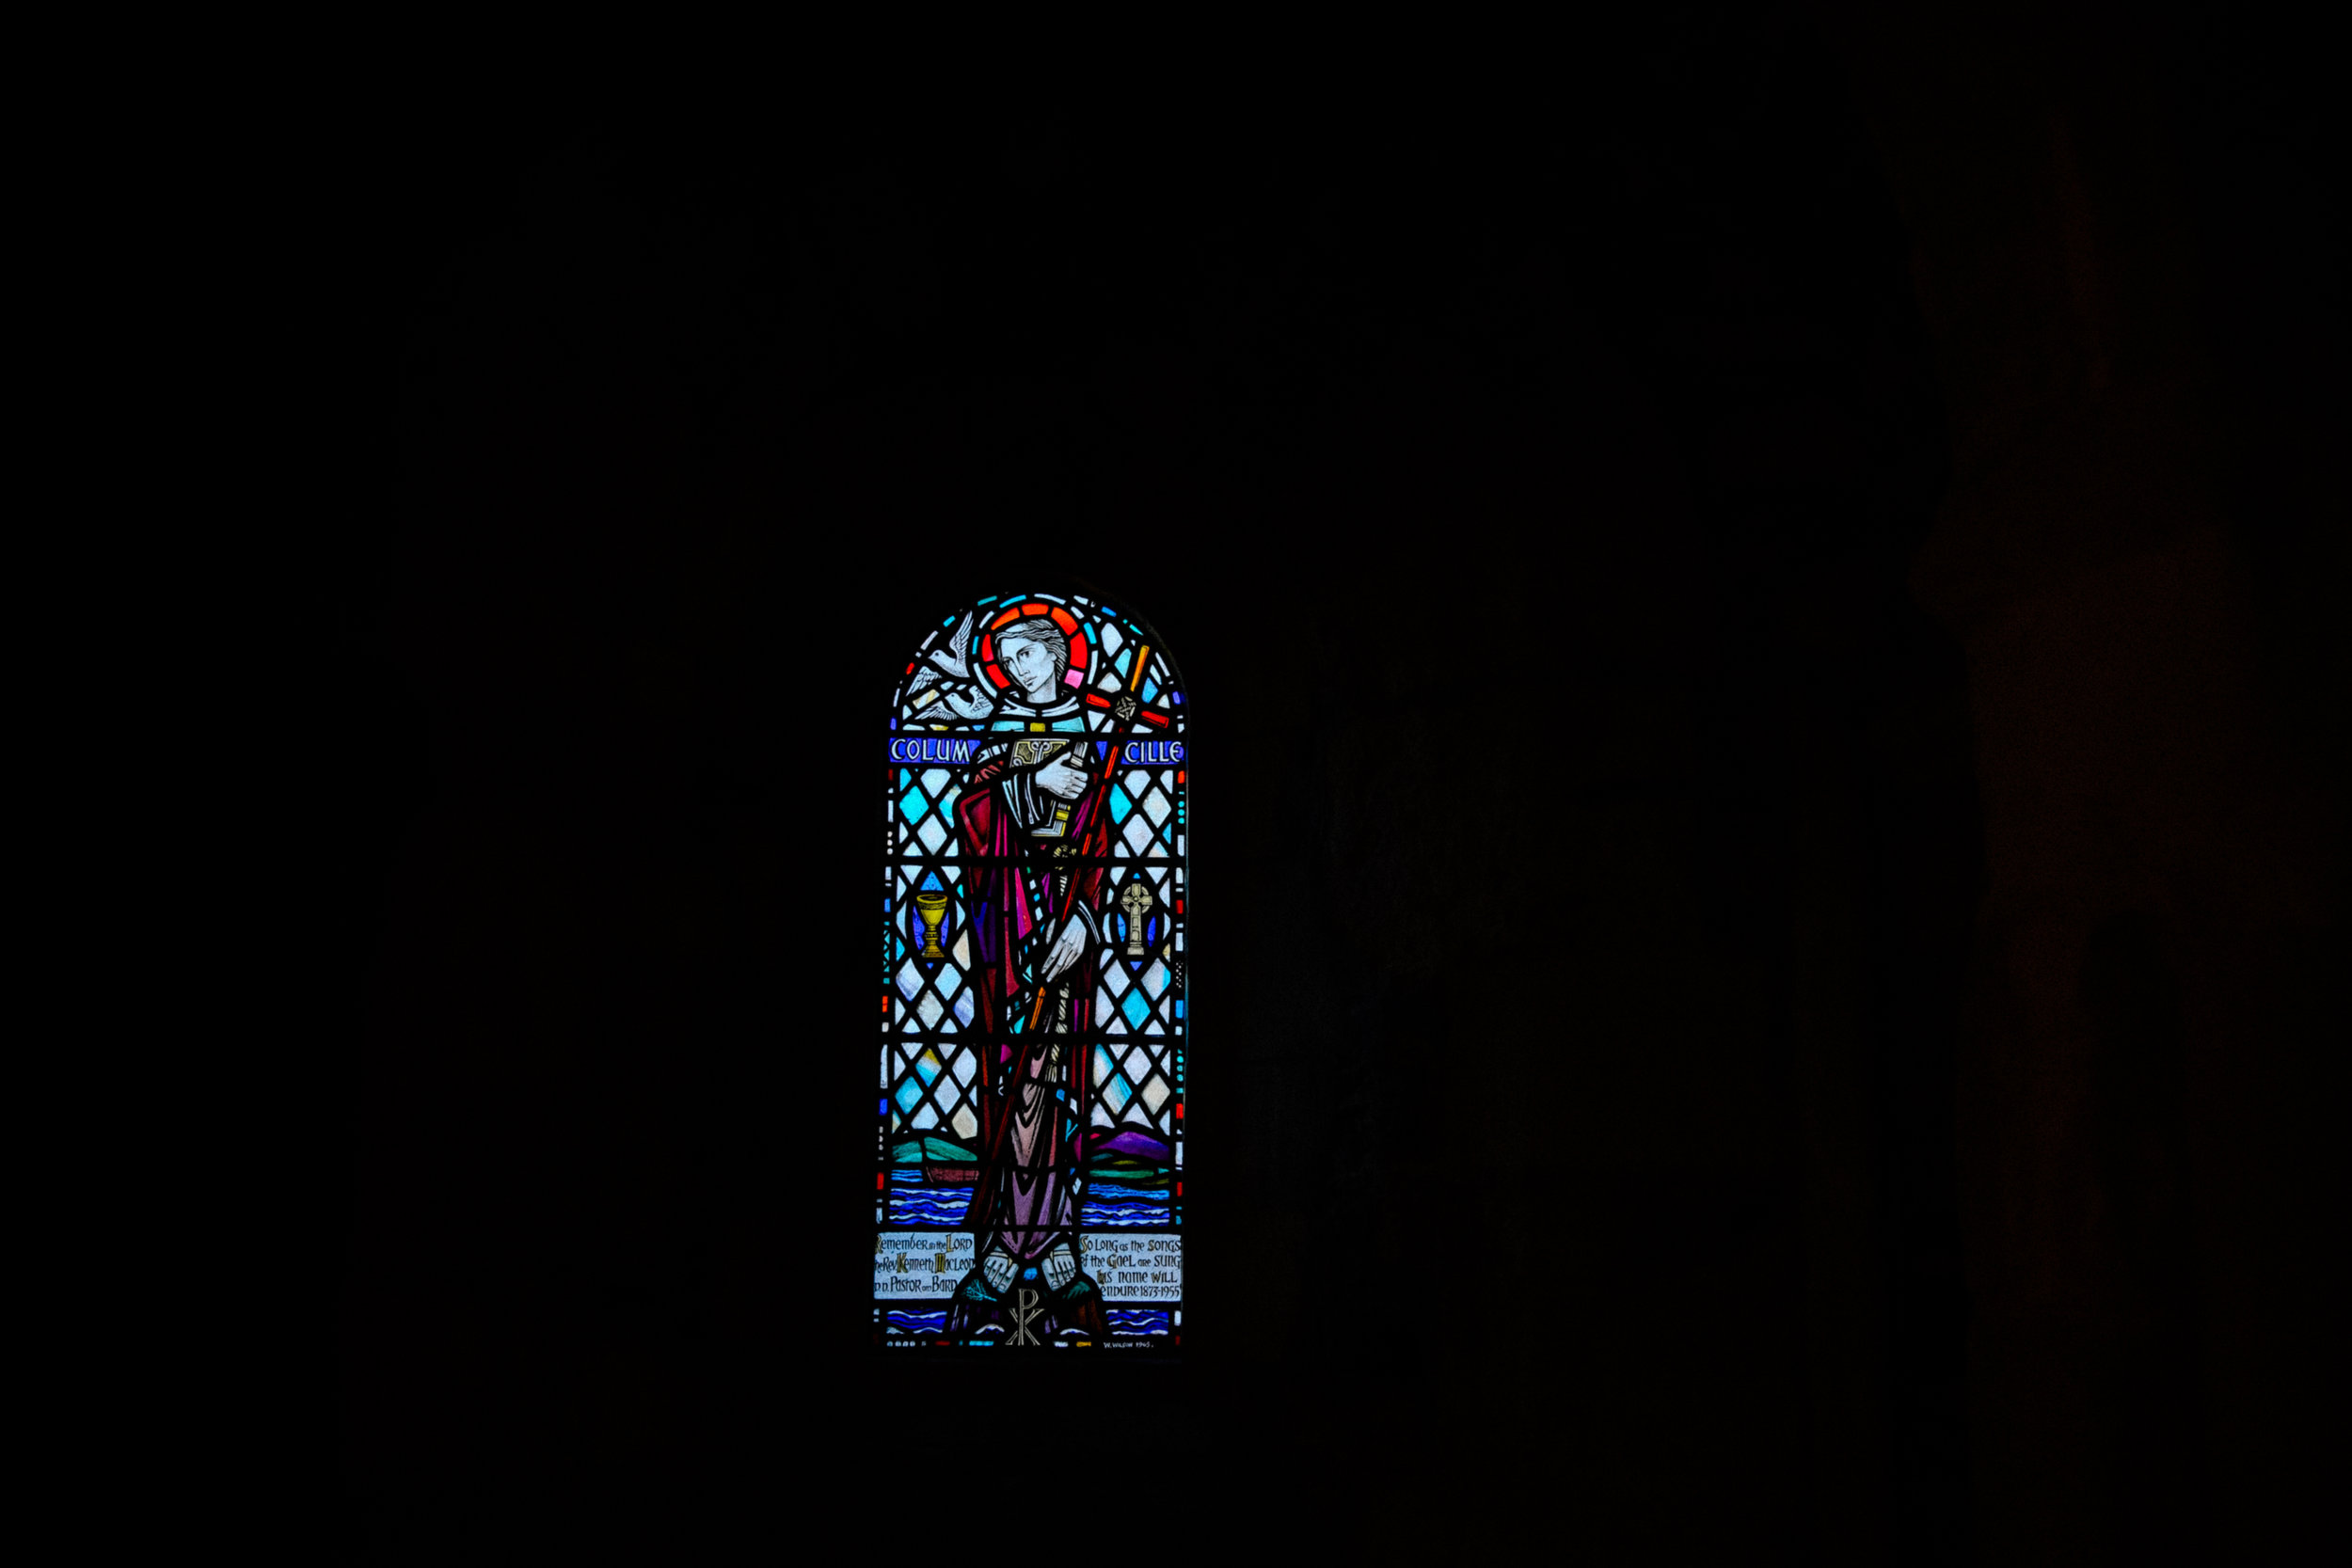 st. columba's stained glass window